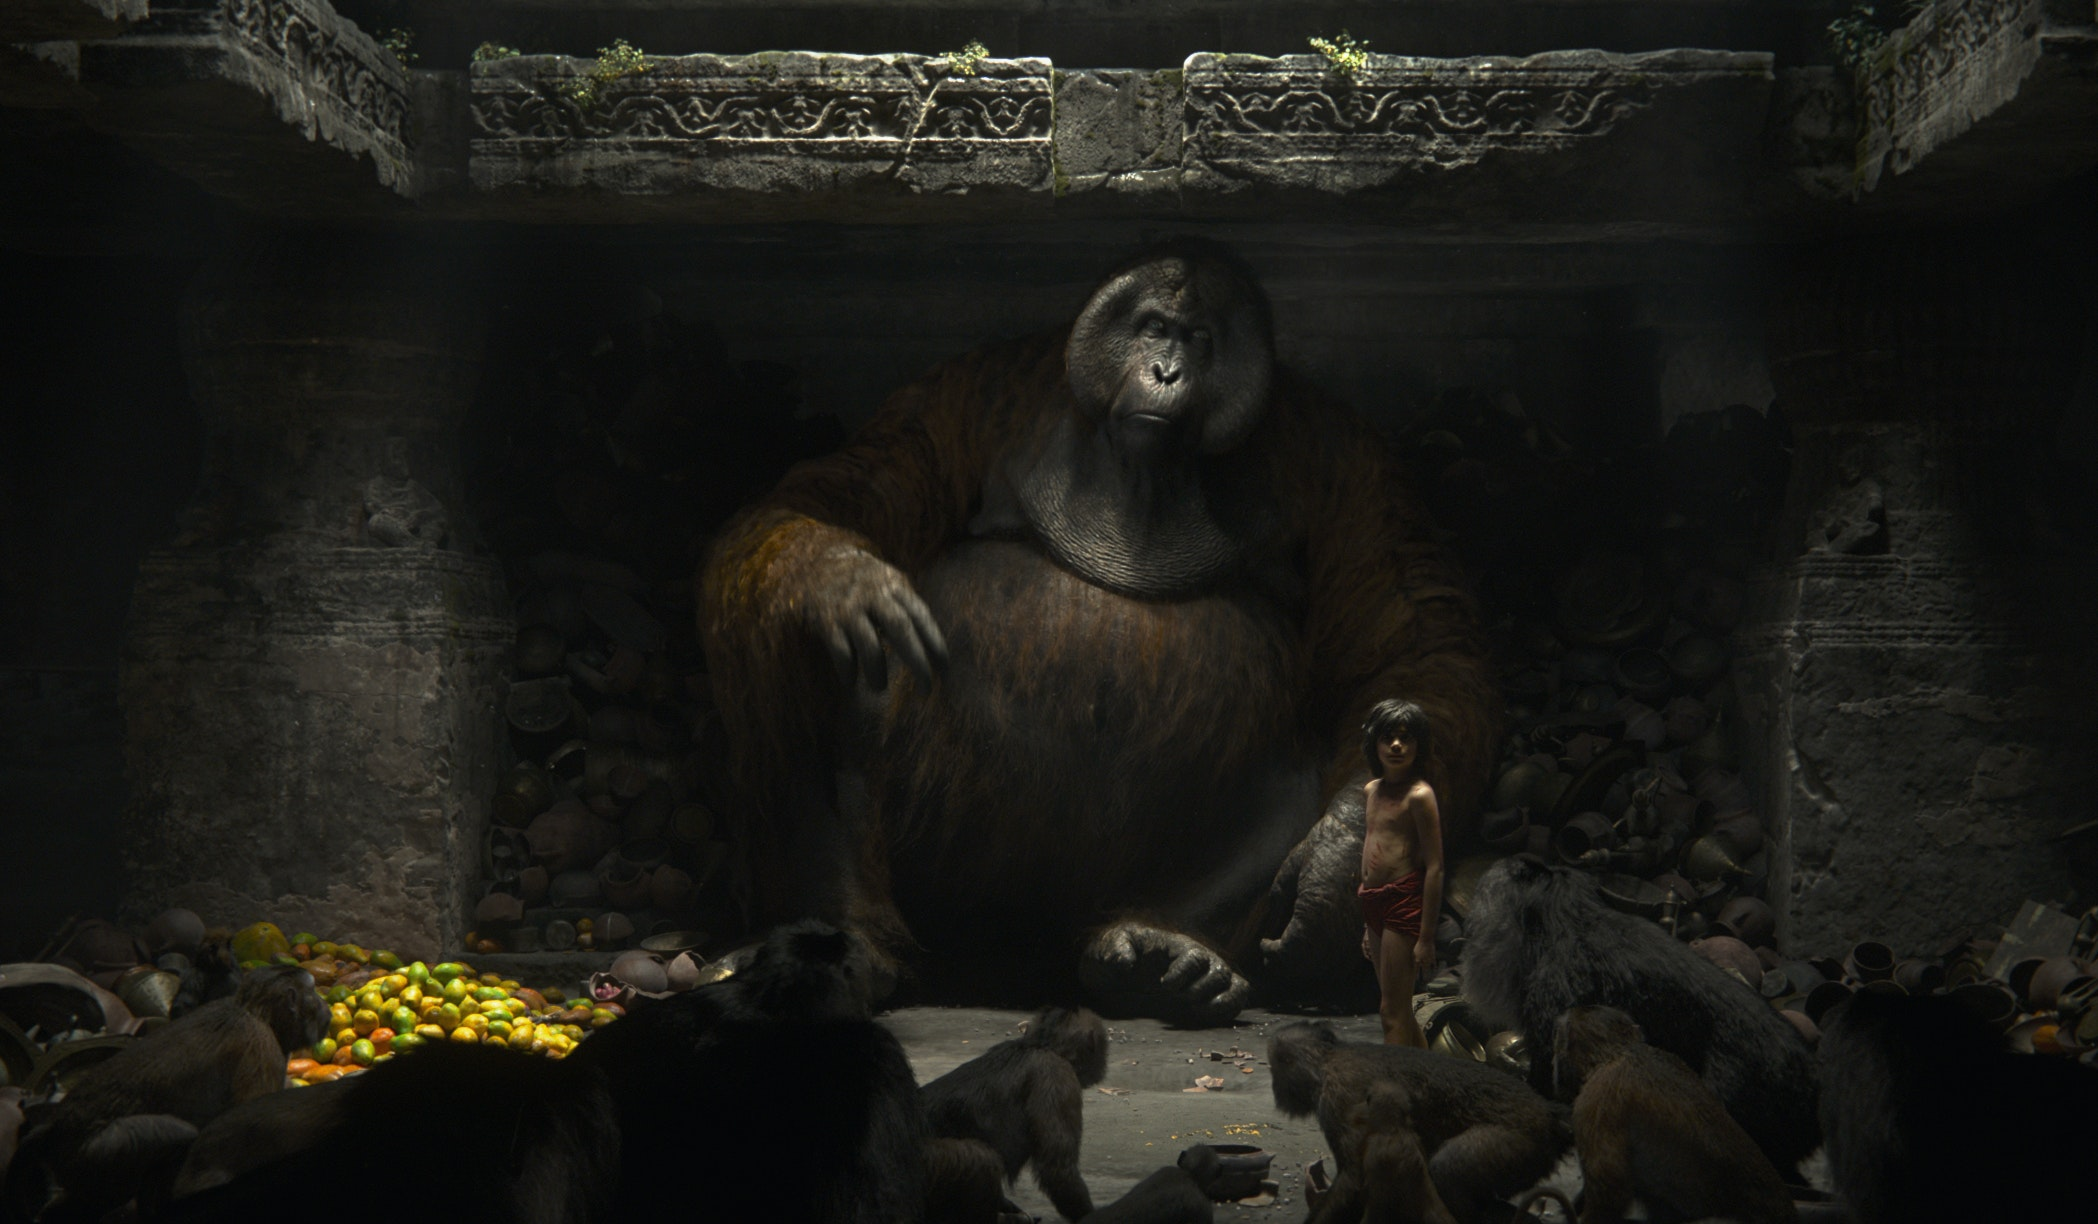 King Louie Jungle Book Song